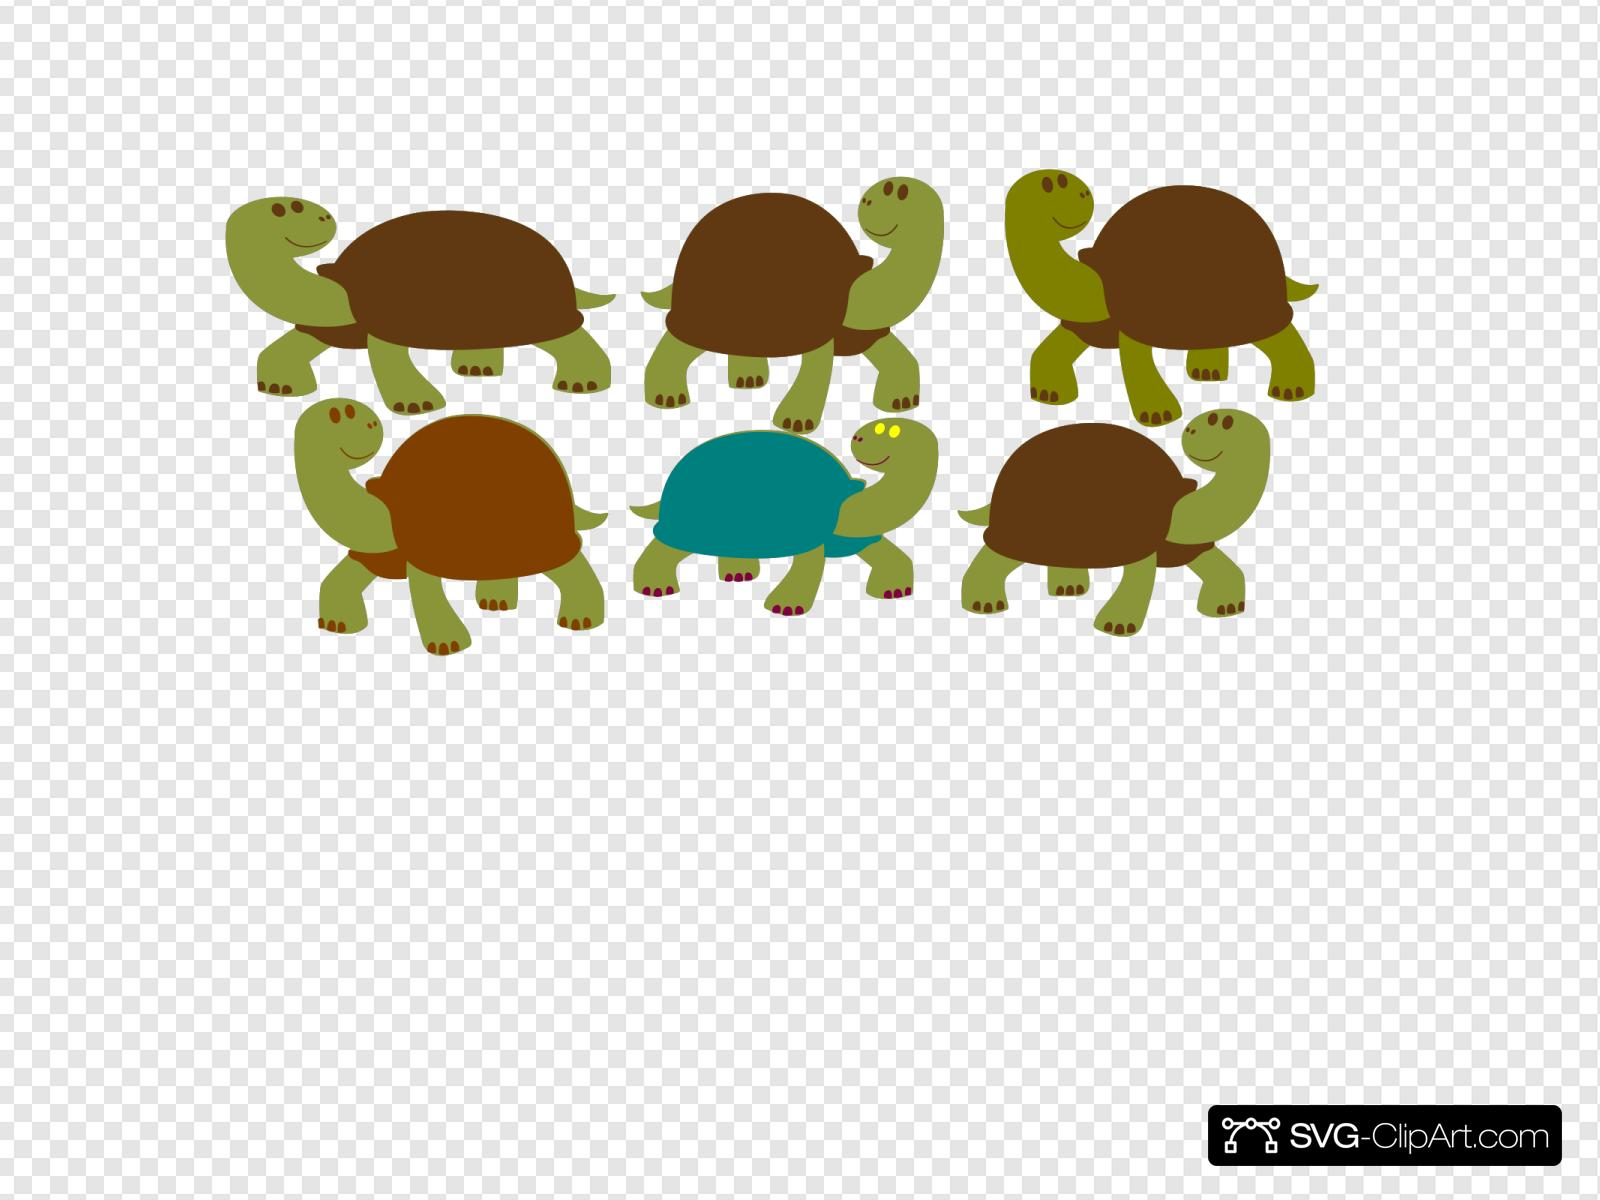 Group Of Turtles Svg Vector Group Of Turtles Clip Art Svg Clipart